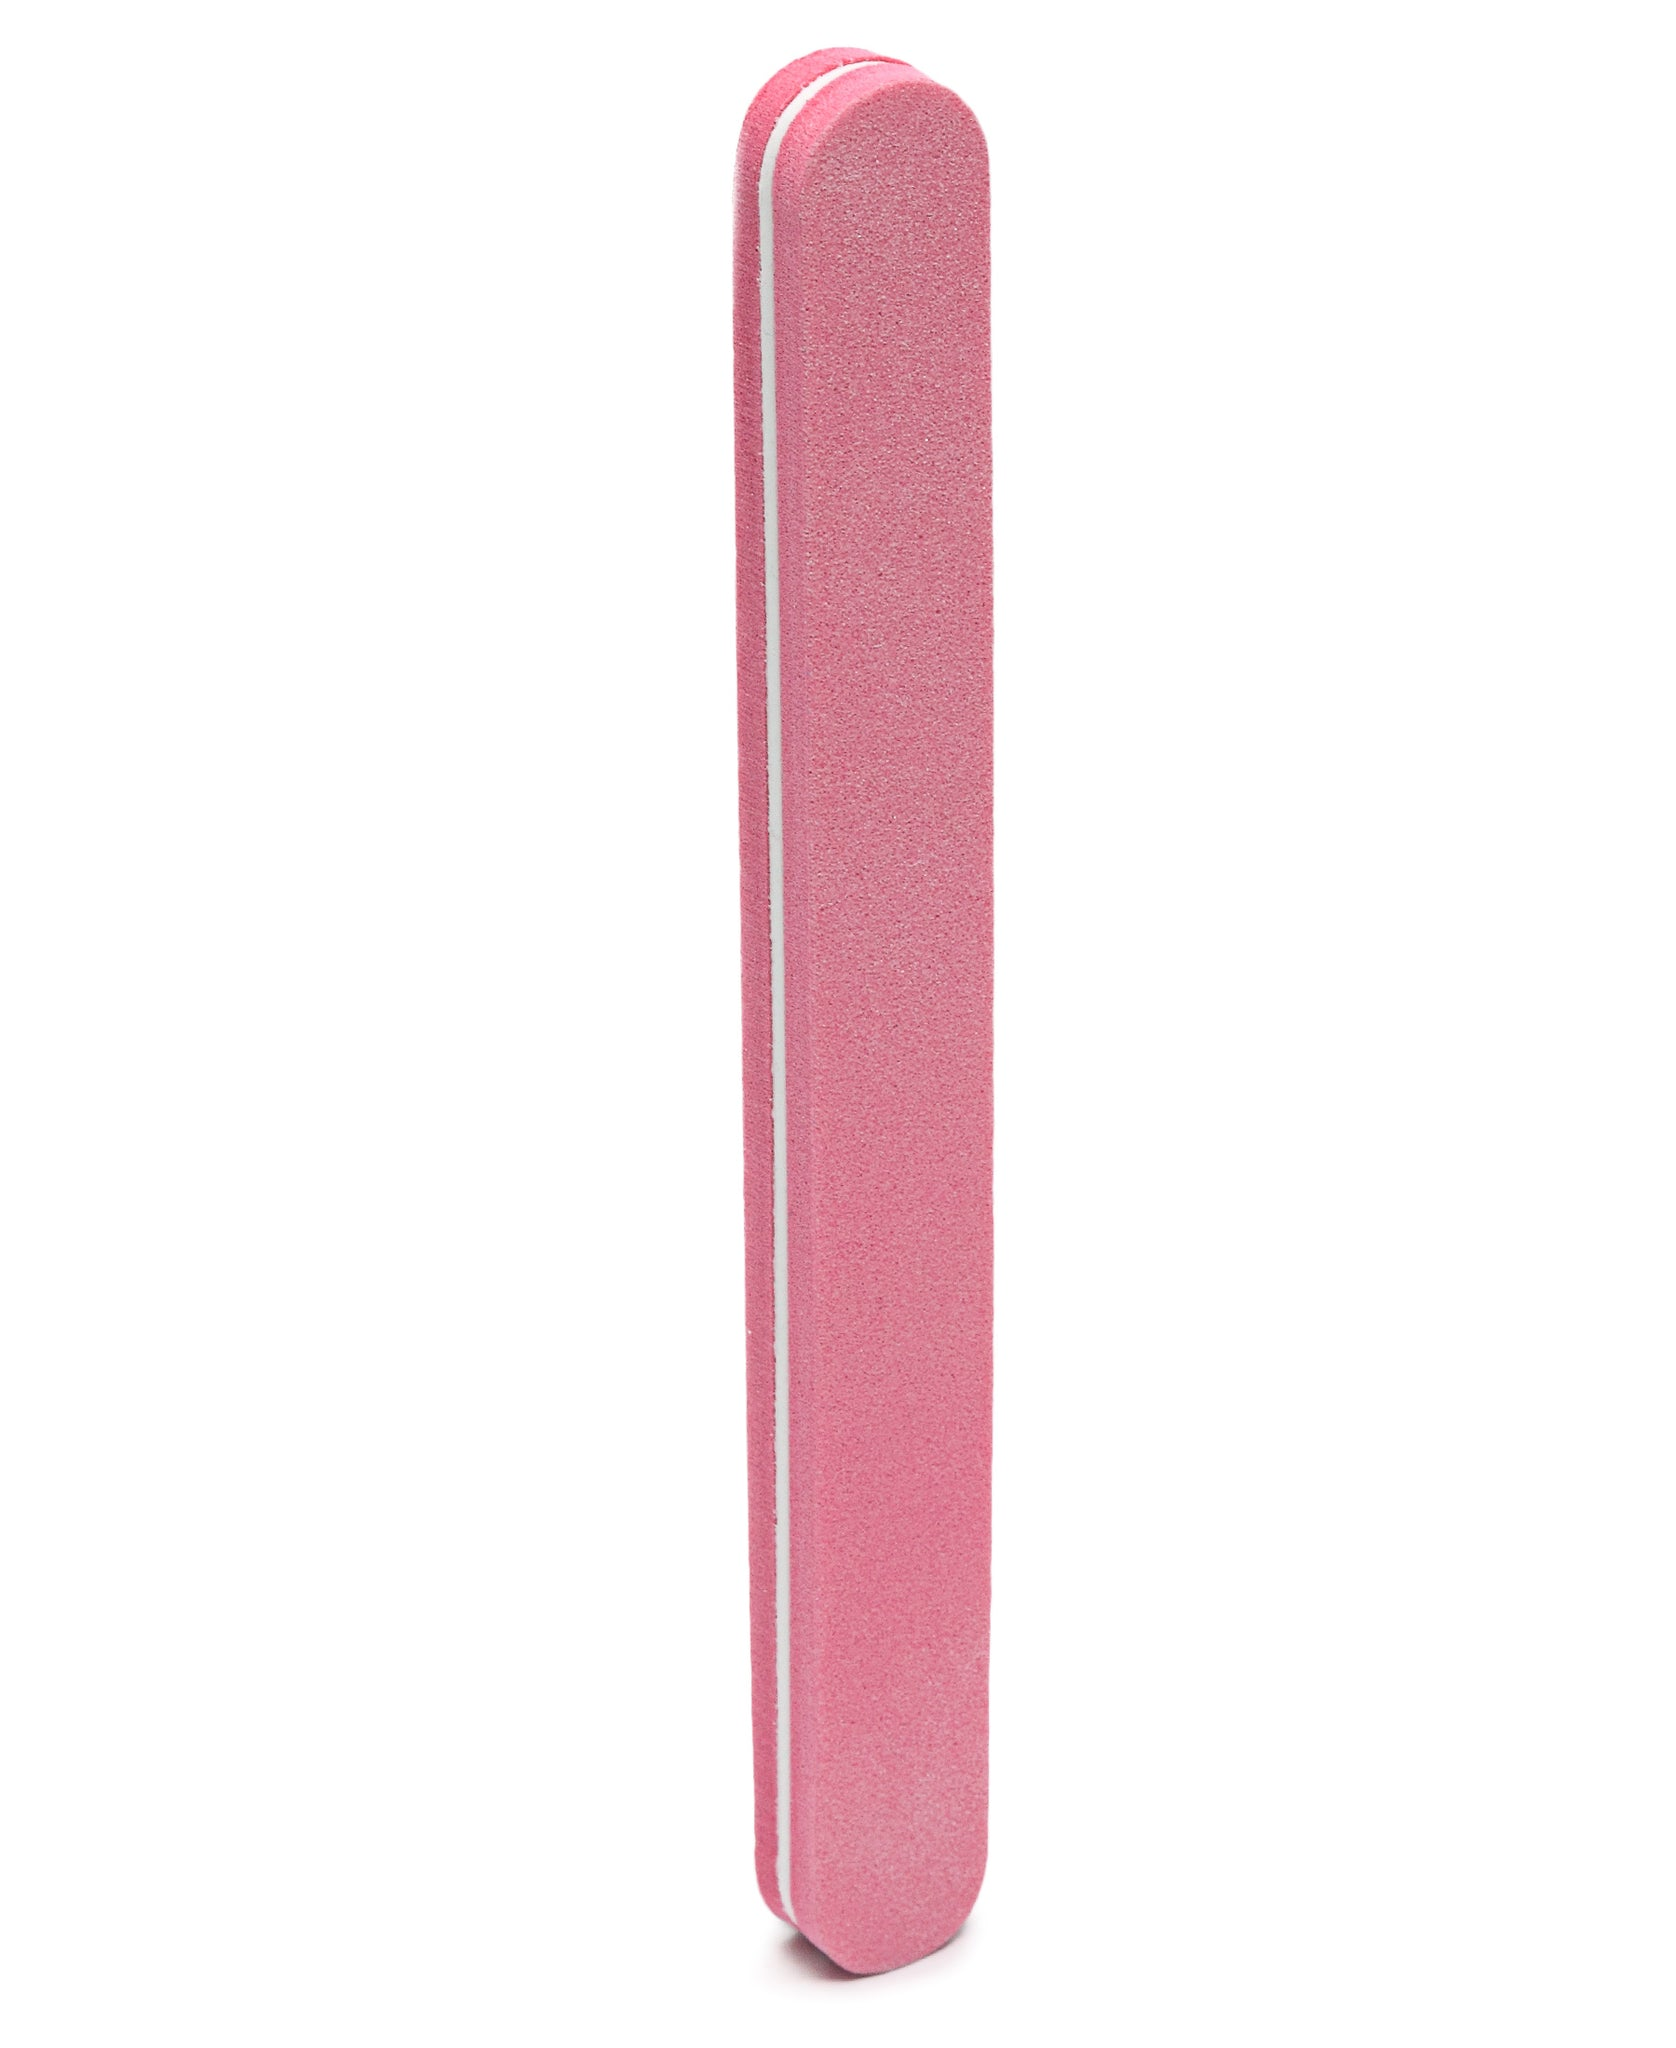 Flexible Sponge Nail Buffer - Pink